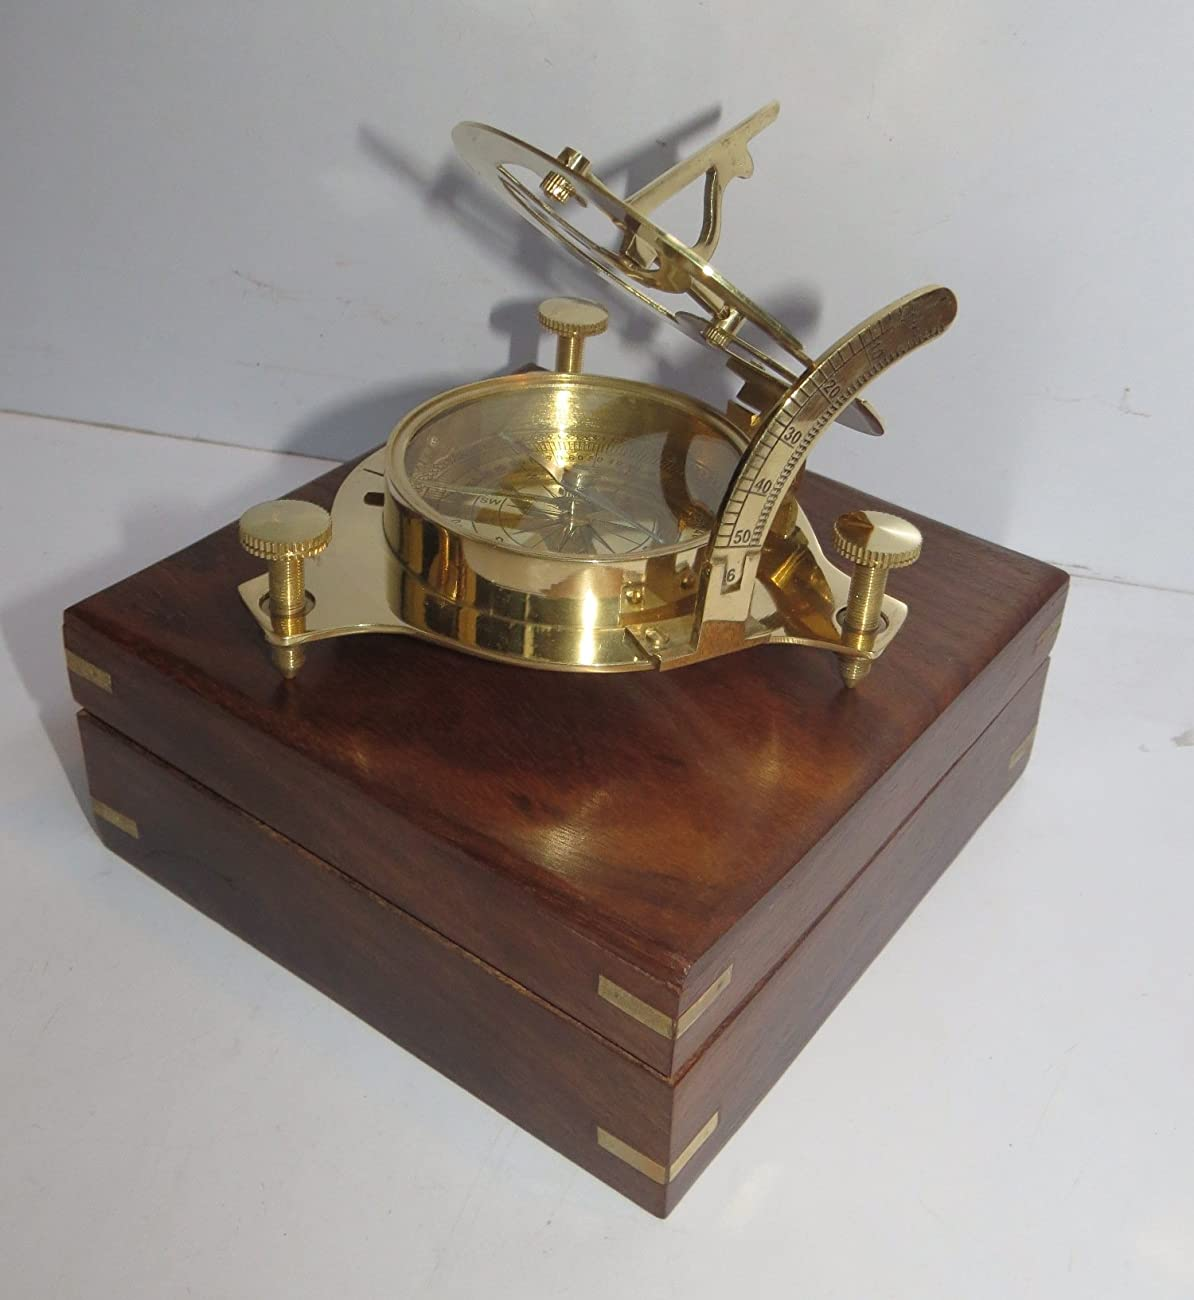 Captain Brass Sundial Compass with Hardwood Wooden Box Nauticalmart 0